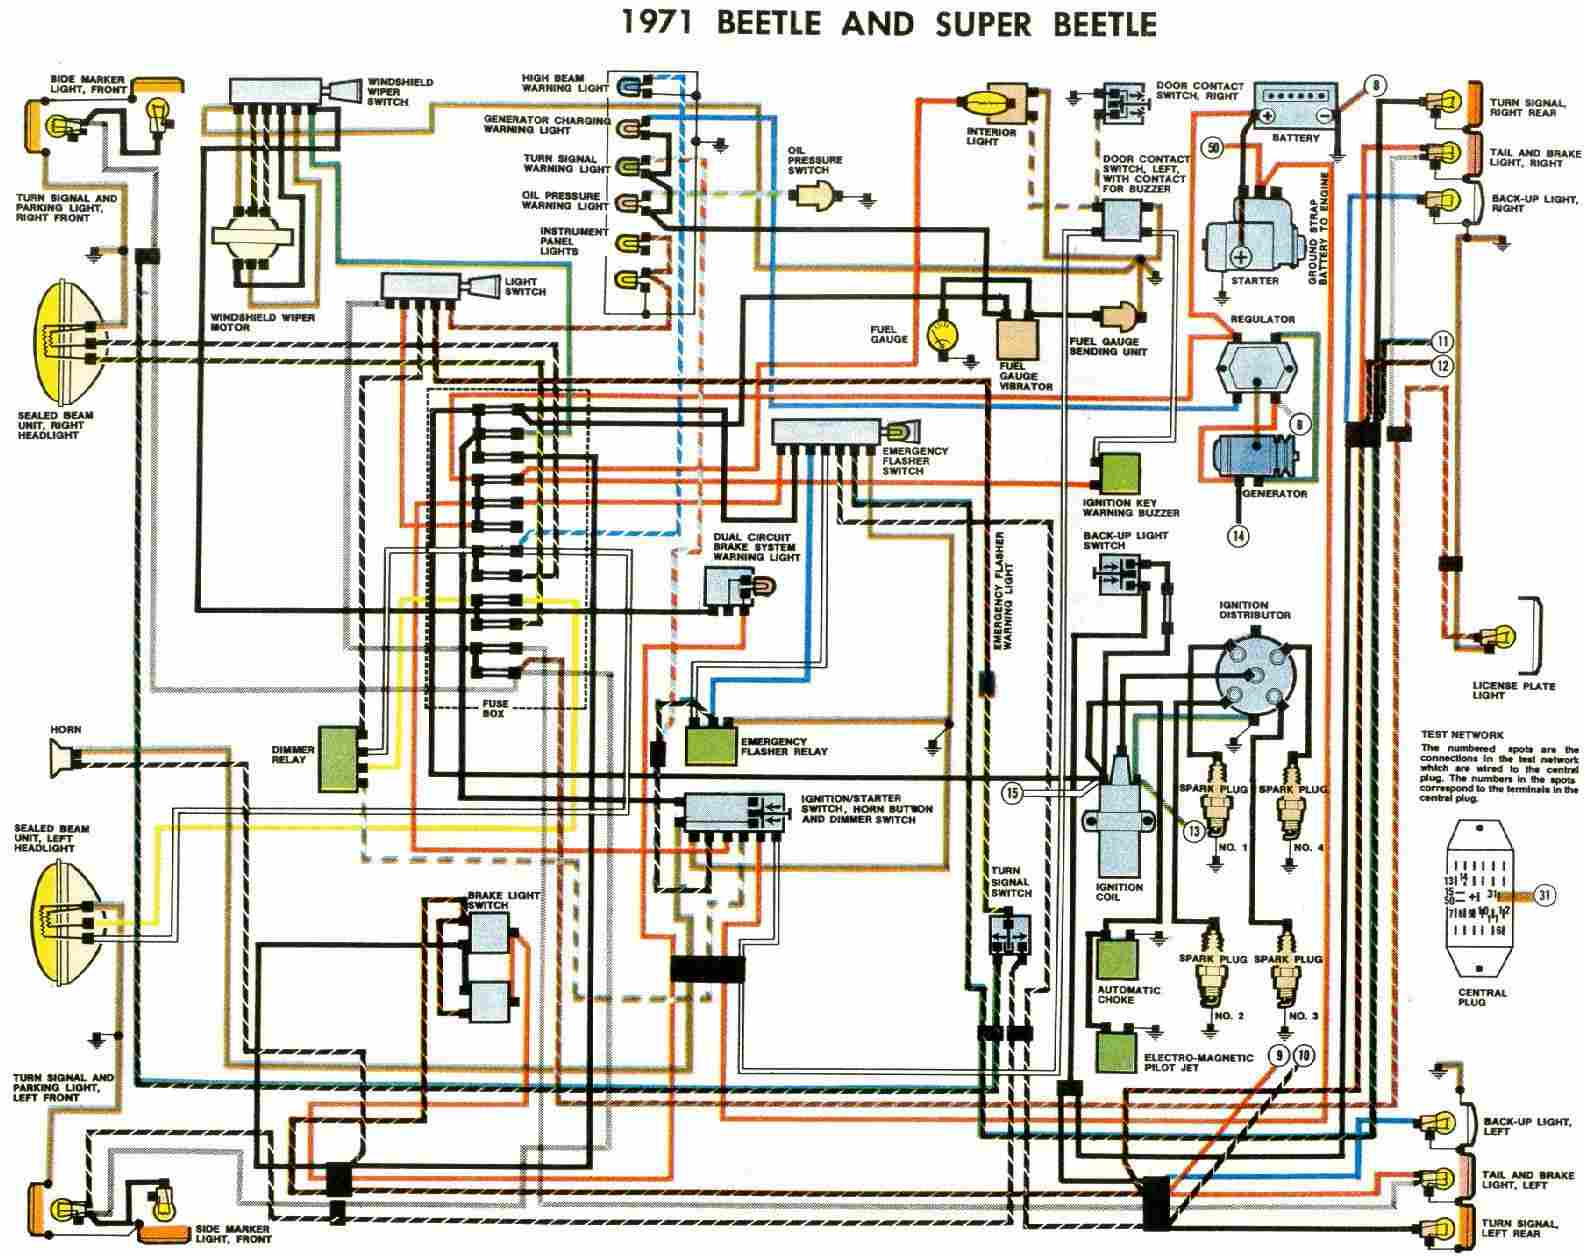 73 Nova Wiring Diagram also Wiring Diagram 1971 Chevy Cheyenne Super besides 252240141242 also United States Map Game Timed together with Photo 05. on 1967 chevelle wiring diagram ebay